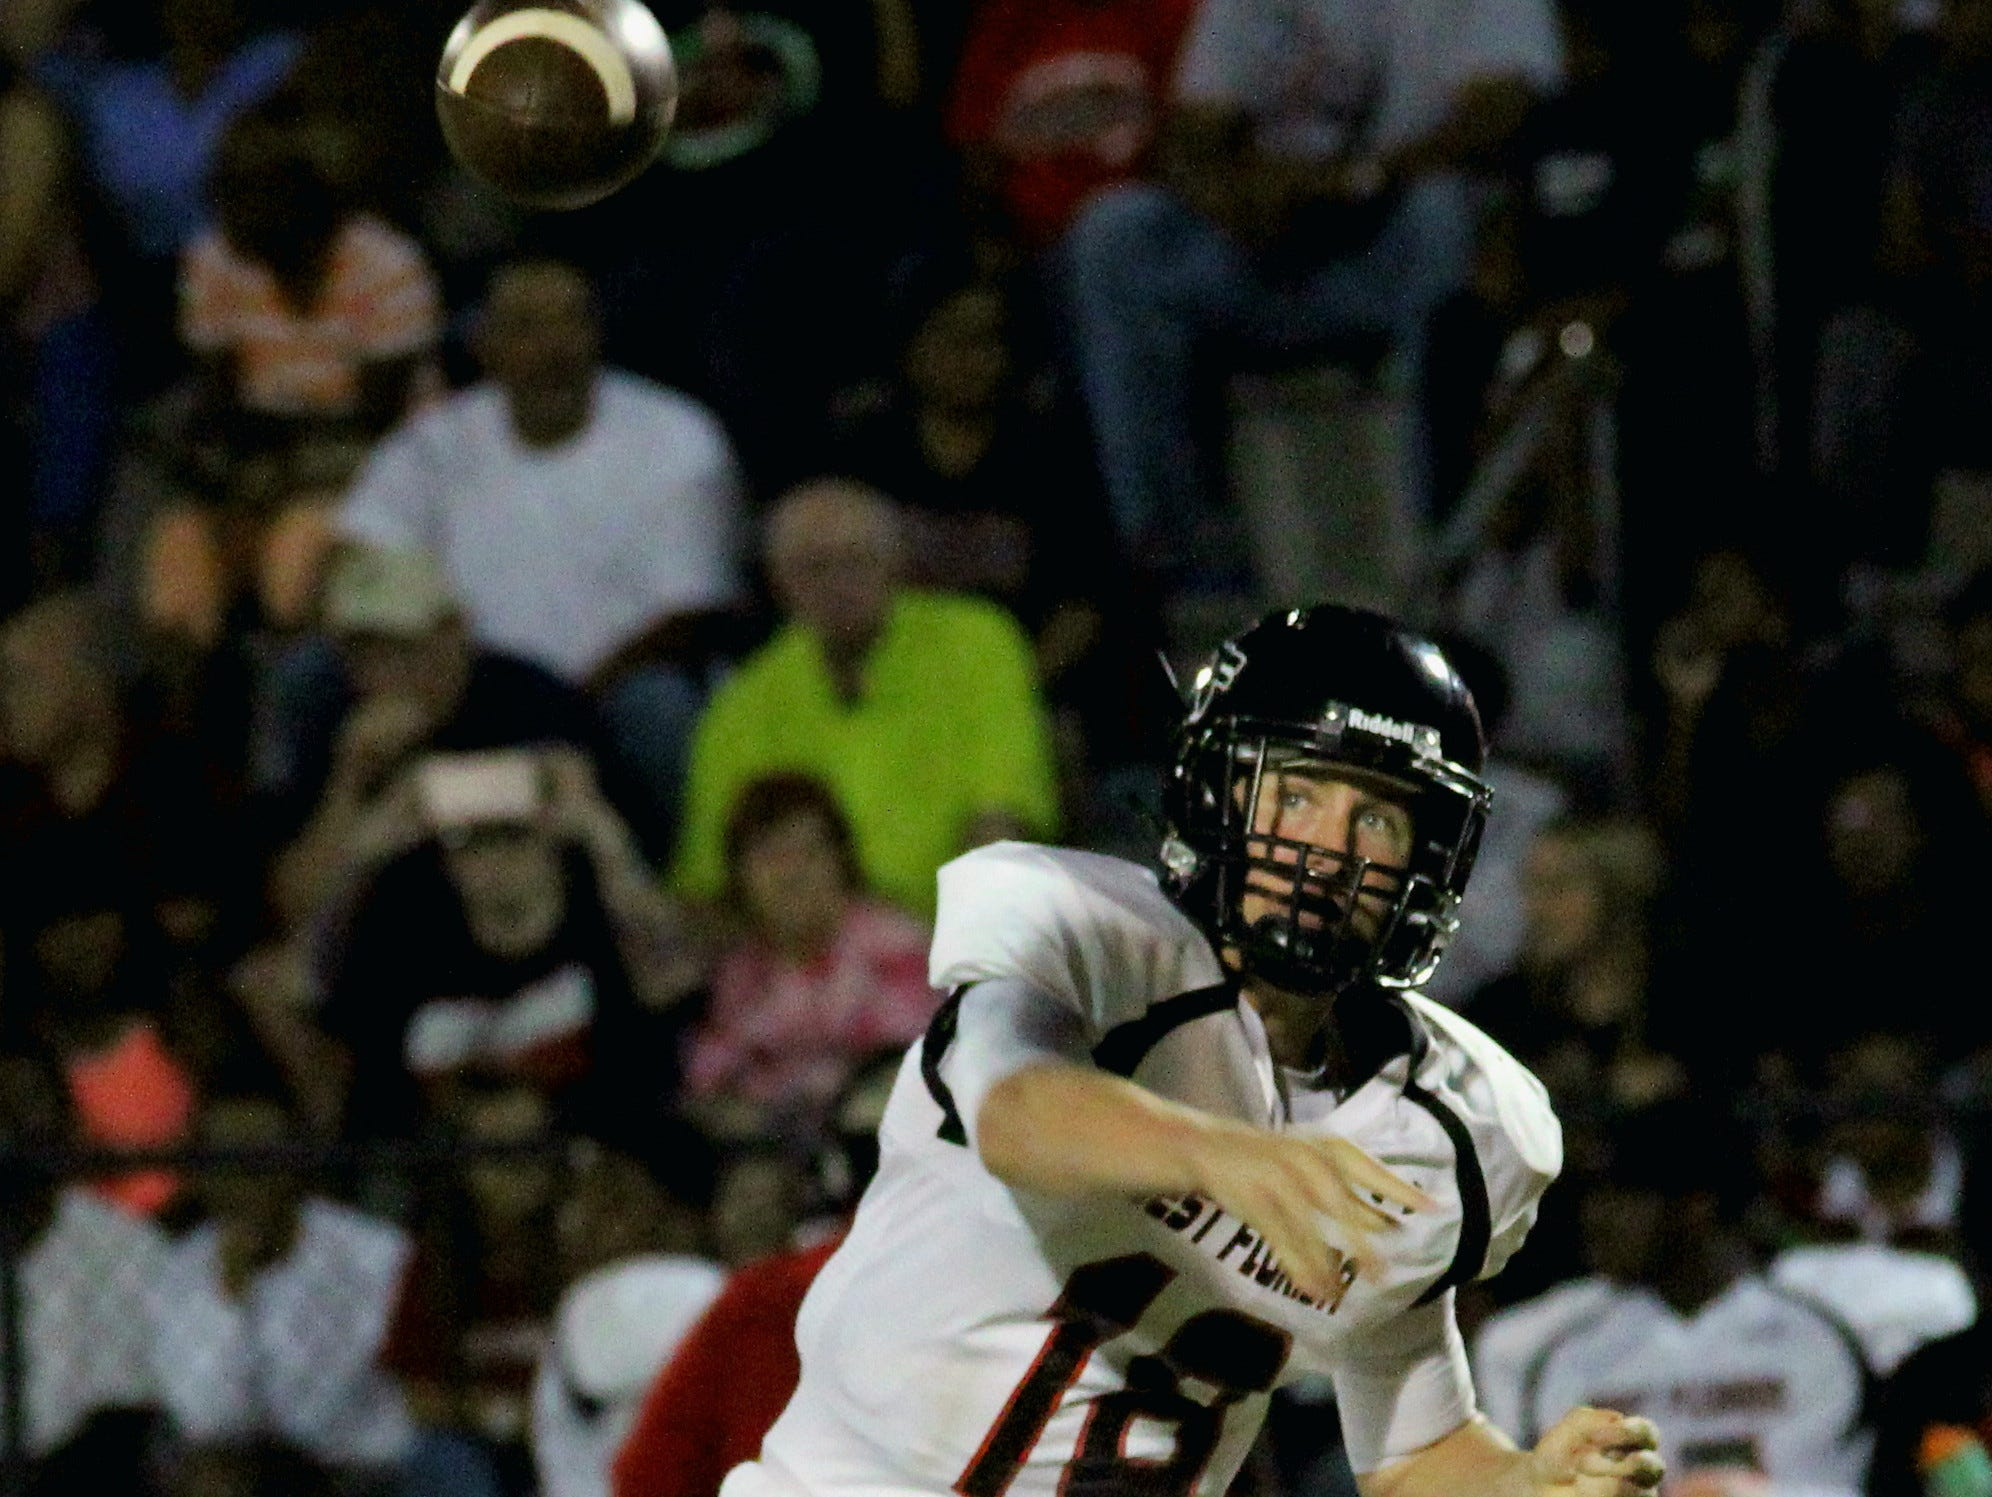 West Florida's Cody Smith launches a pass in the first quarter.